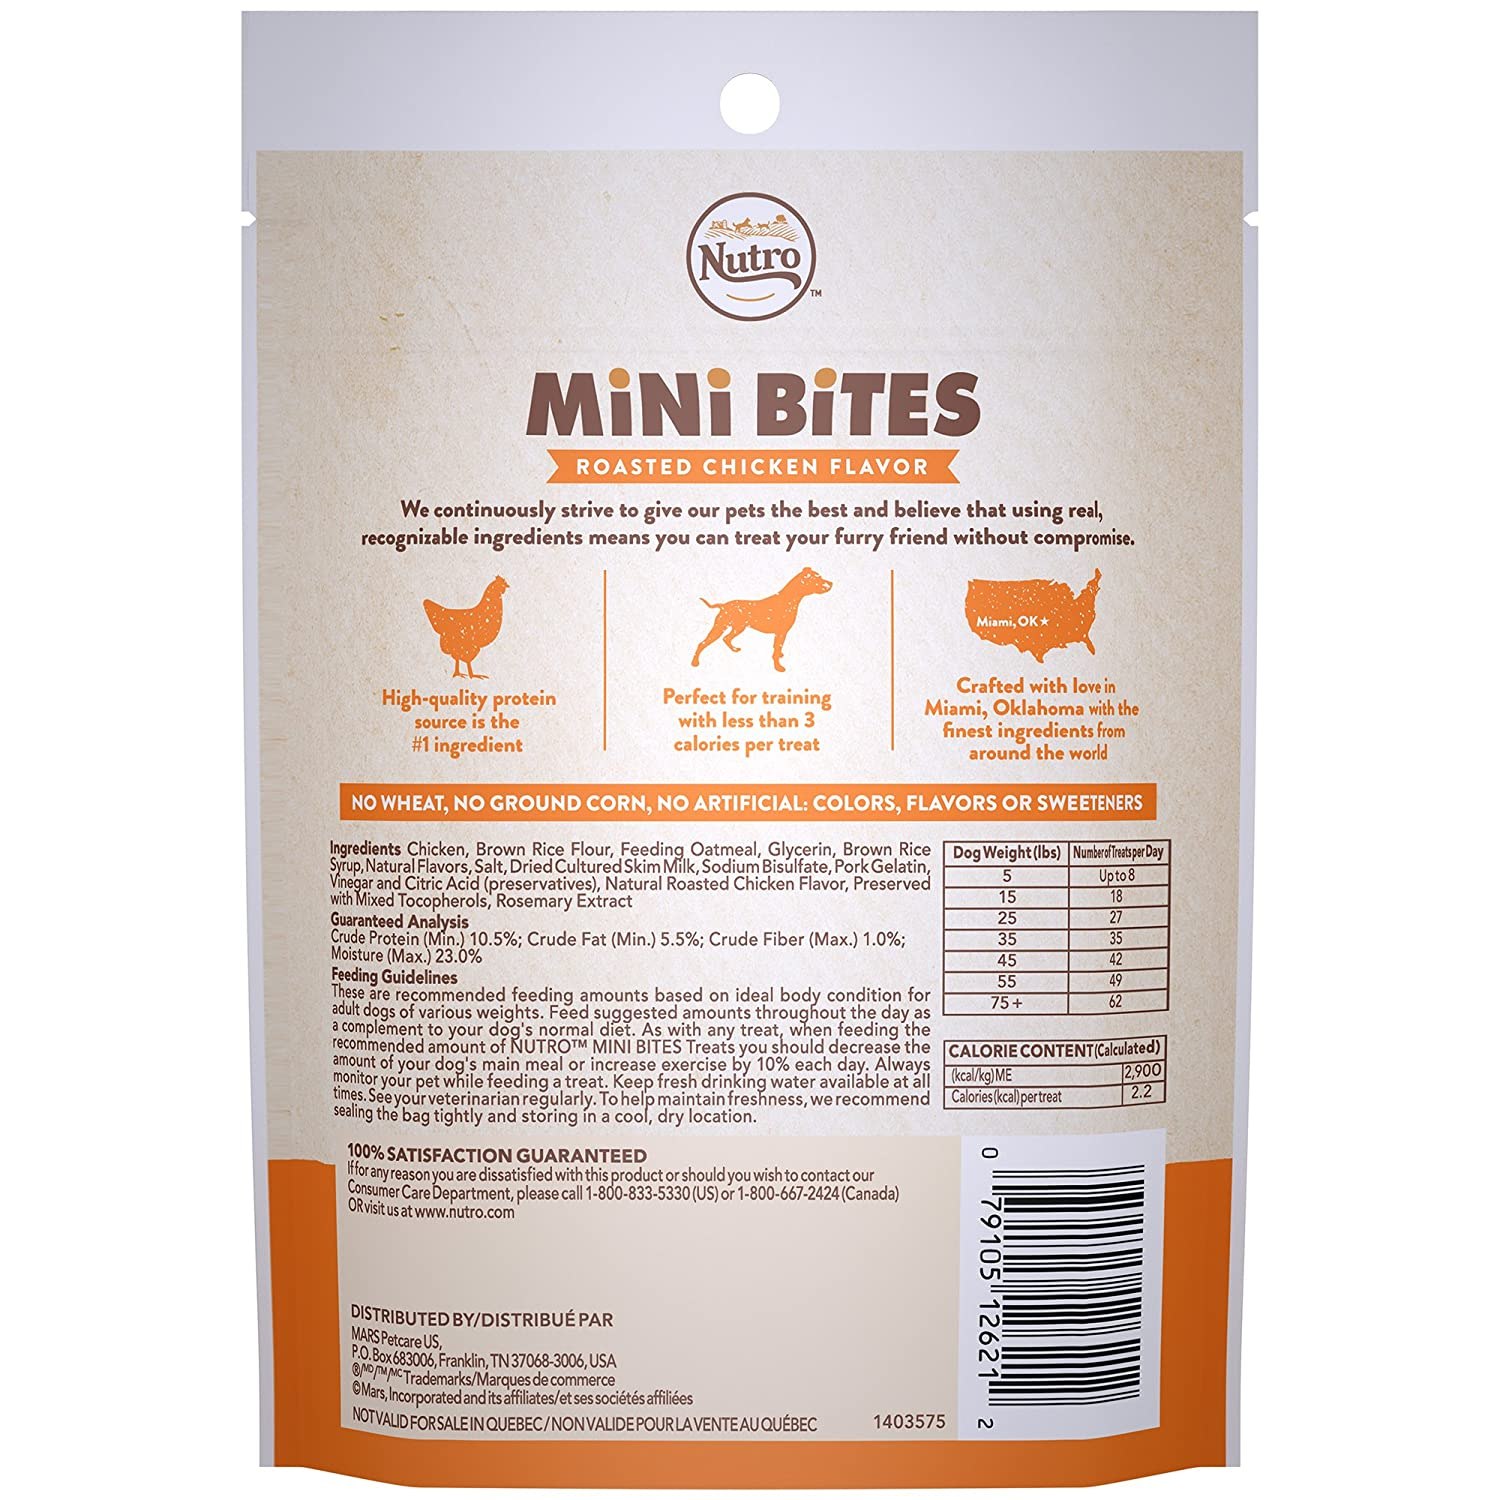 Amazon.com : Nutro Mini Bites Dog Treats Roasted Chicken Flavor, (8) 4.5 Oz. Bags : Pet Supplies